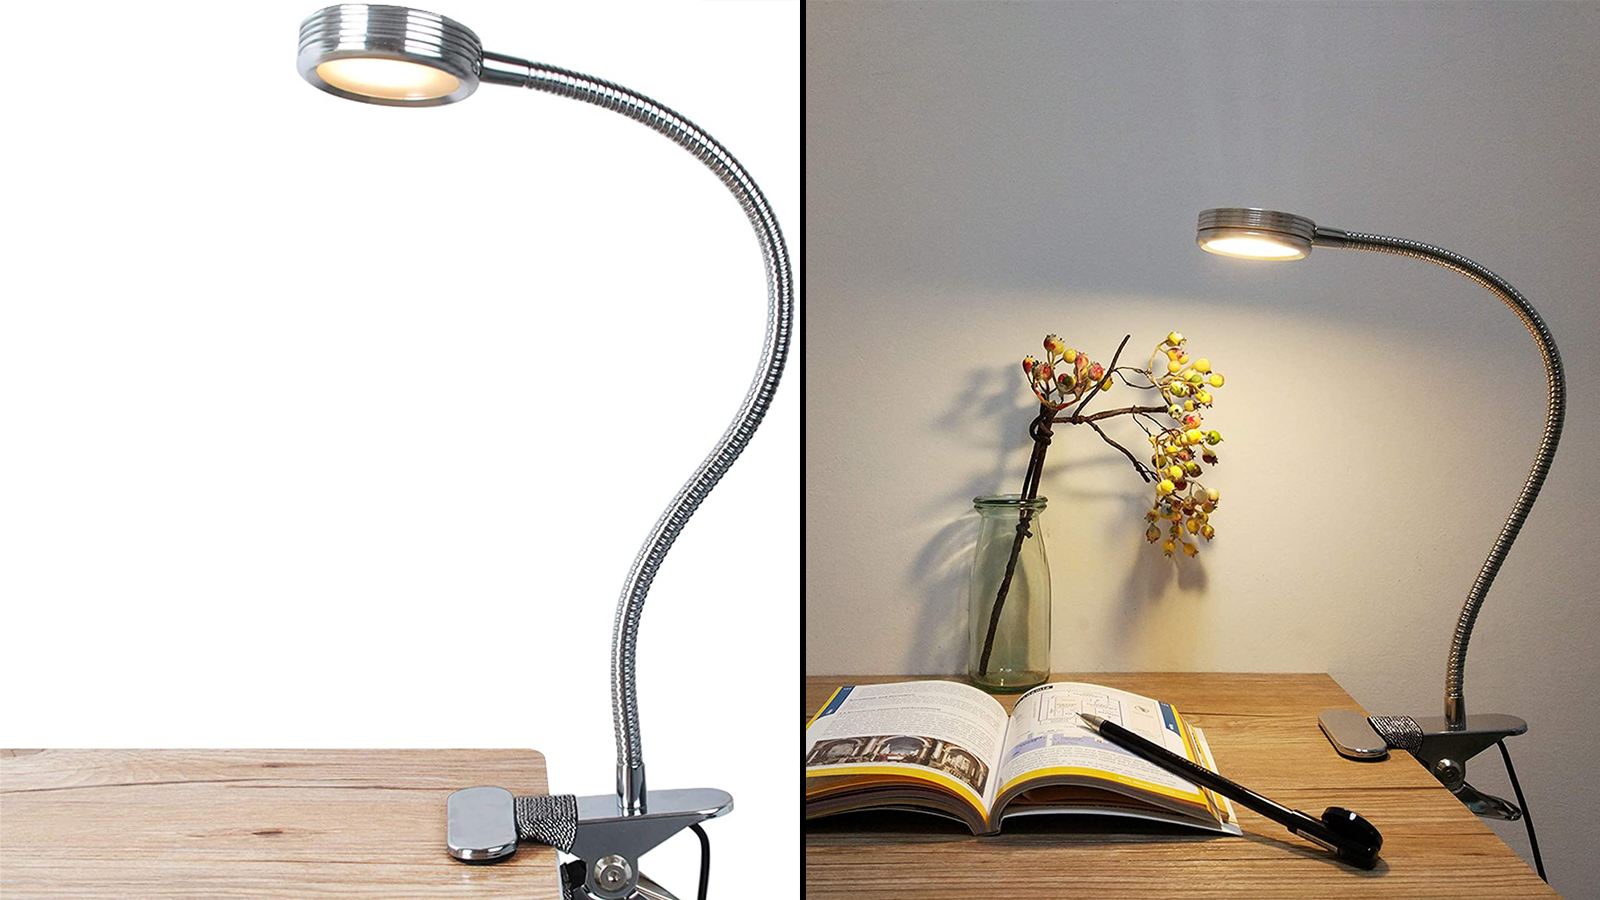 This Lamp Can Clip On to Virtually Any Surface and Works in Any Room